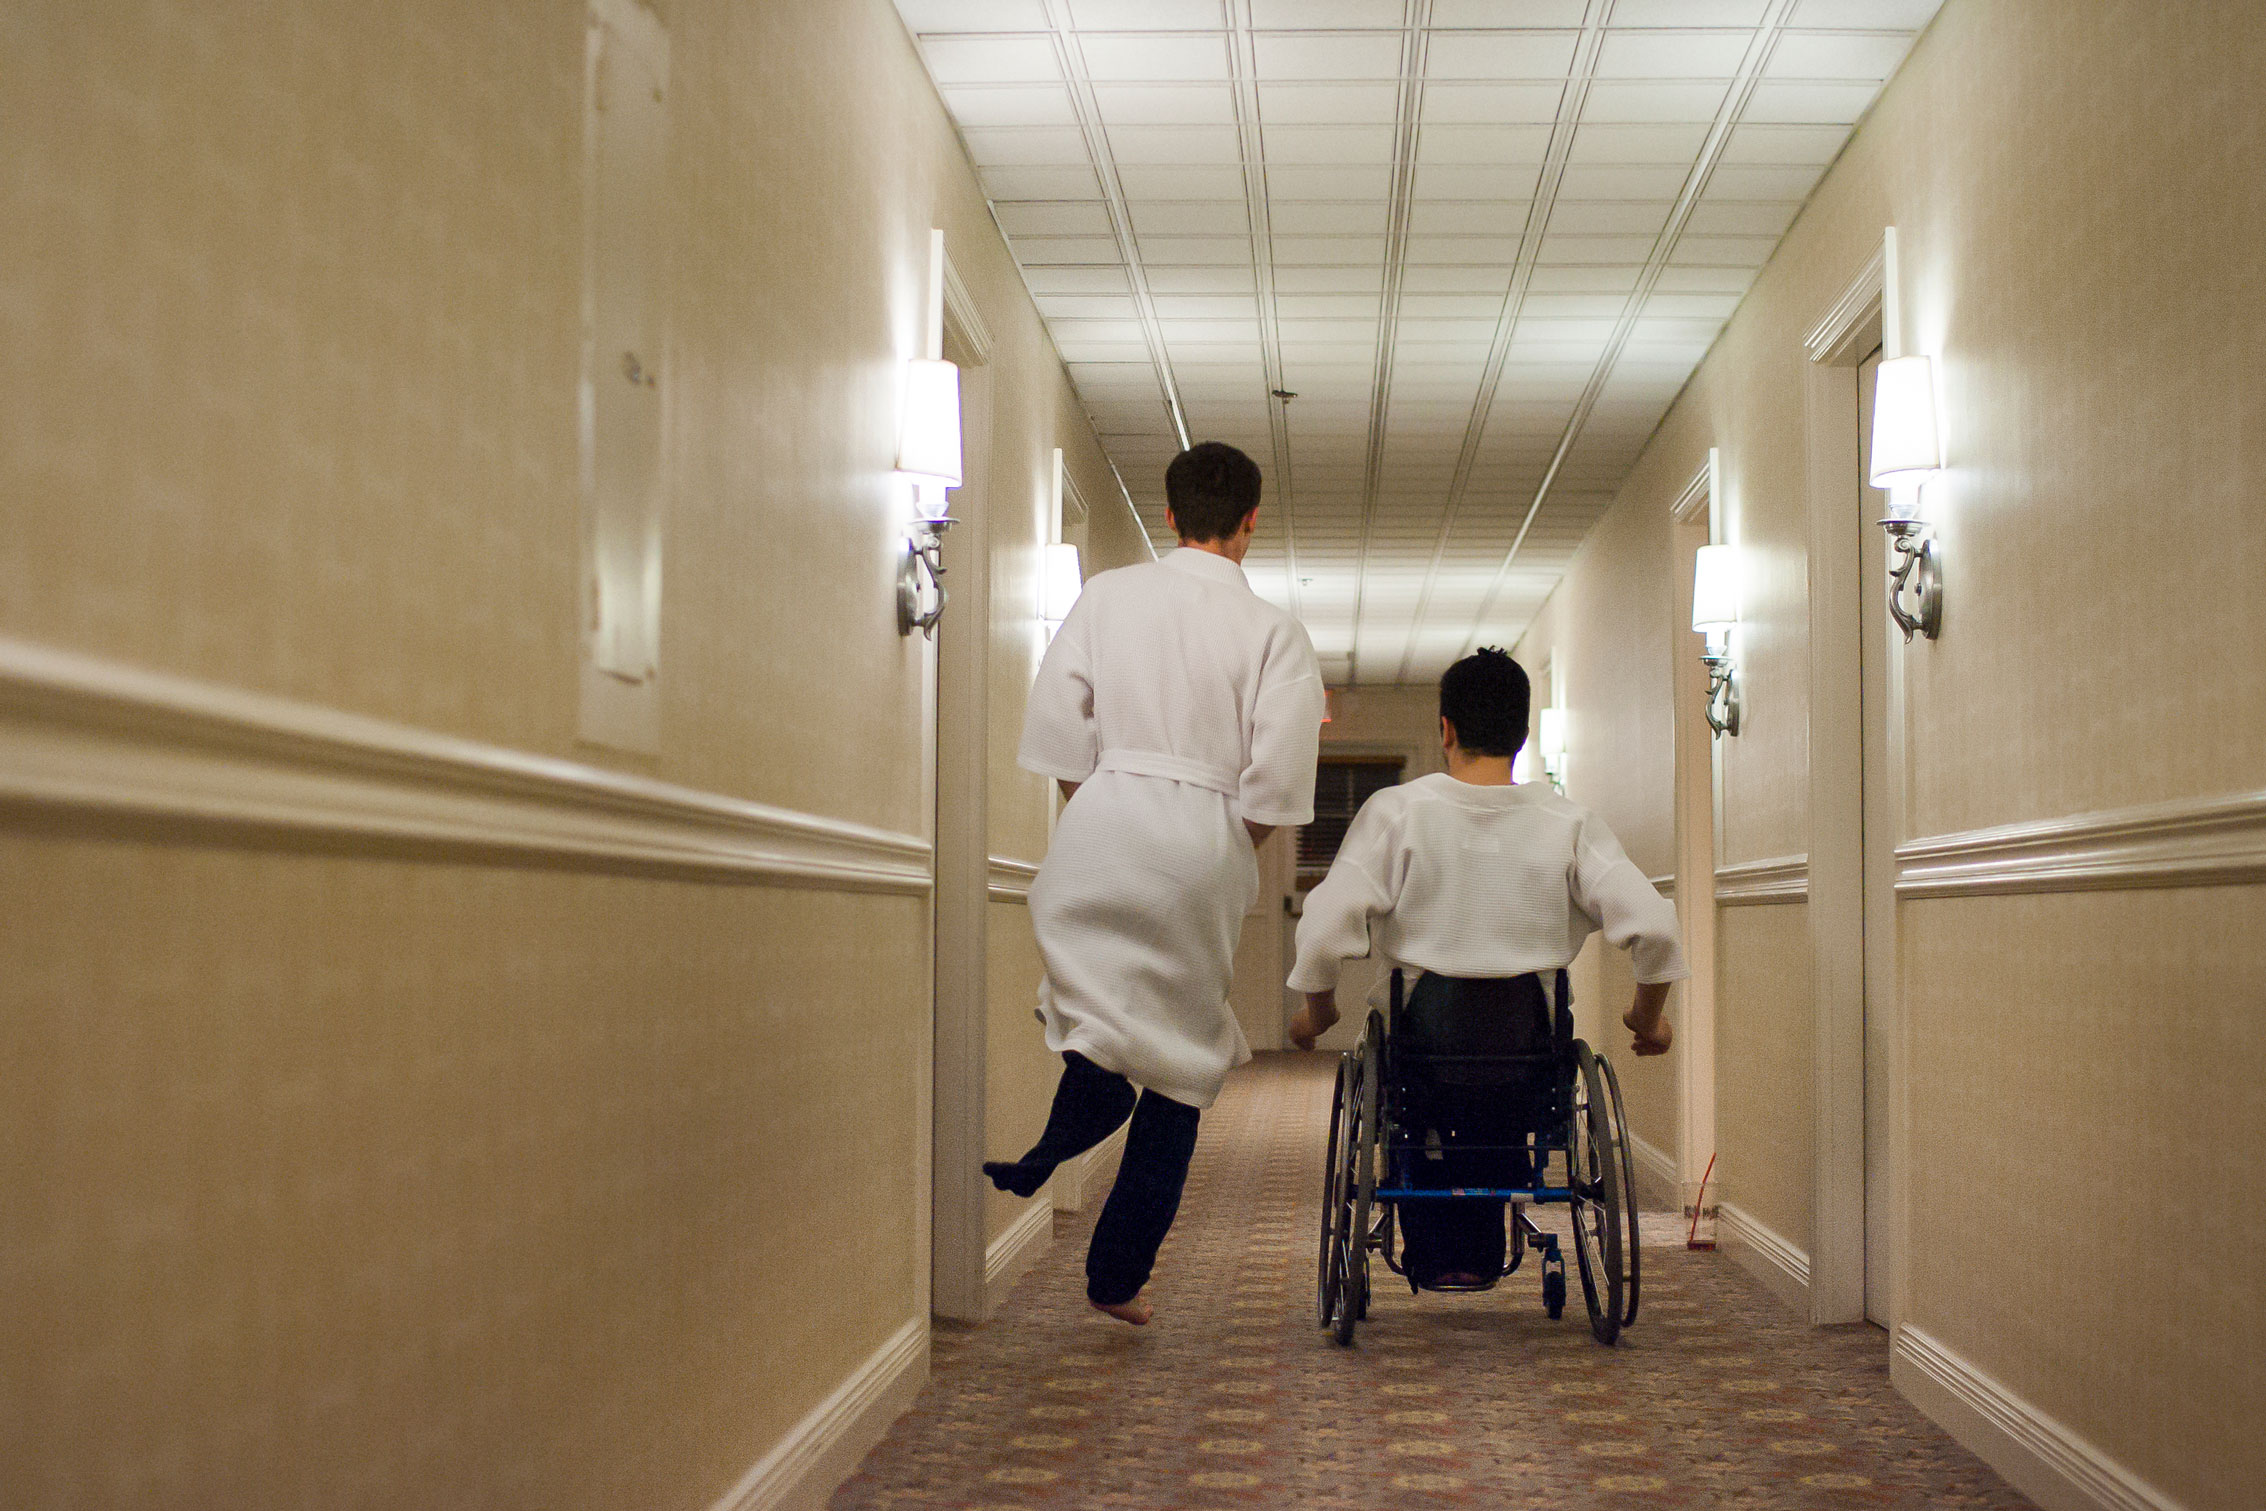 Tom Smurr and Jaime Balthazar proceed down the hallway of their hotel later that night.